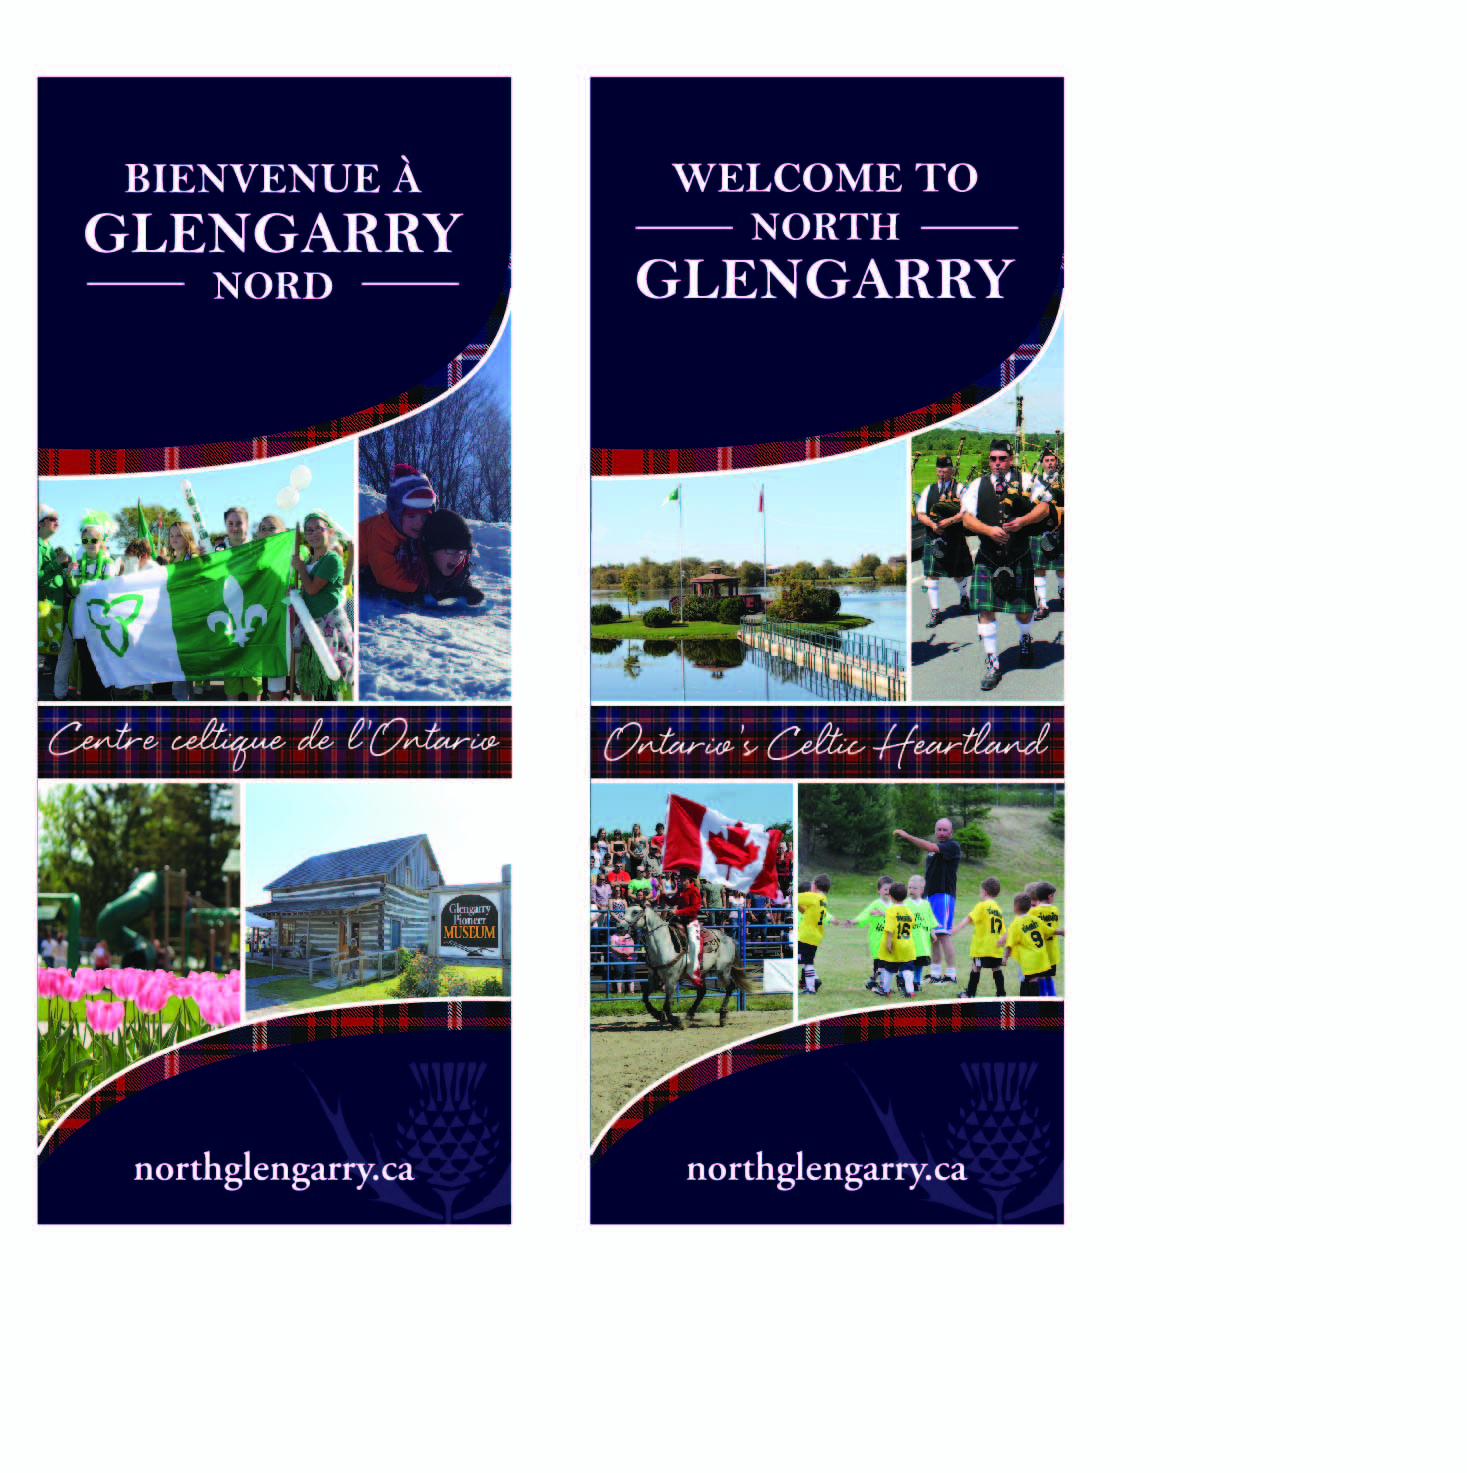 Welcome to North Glengarry - Bienvenue a Glengarry Nord